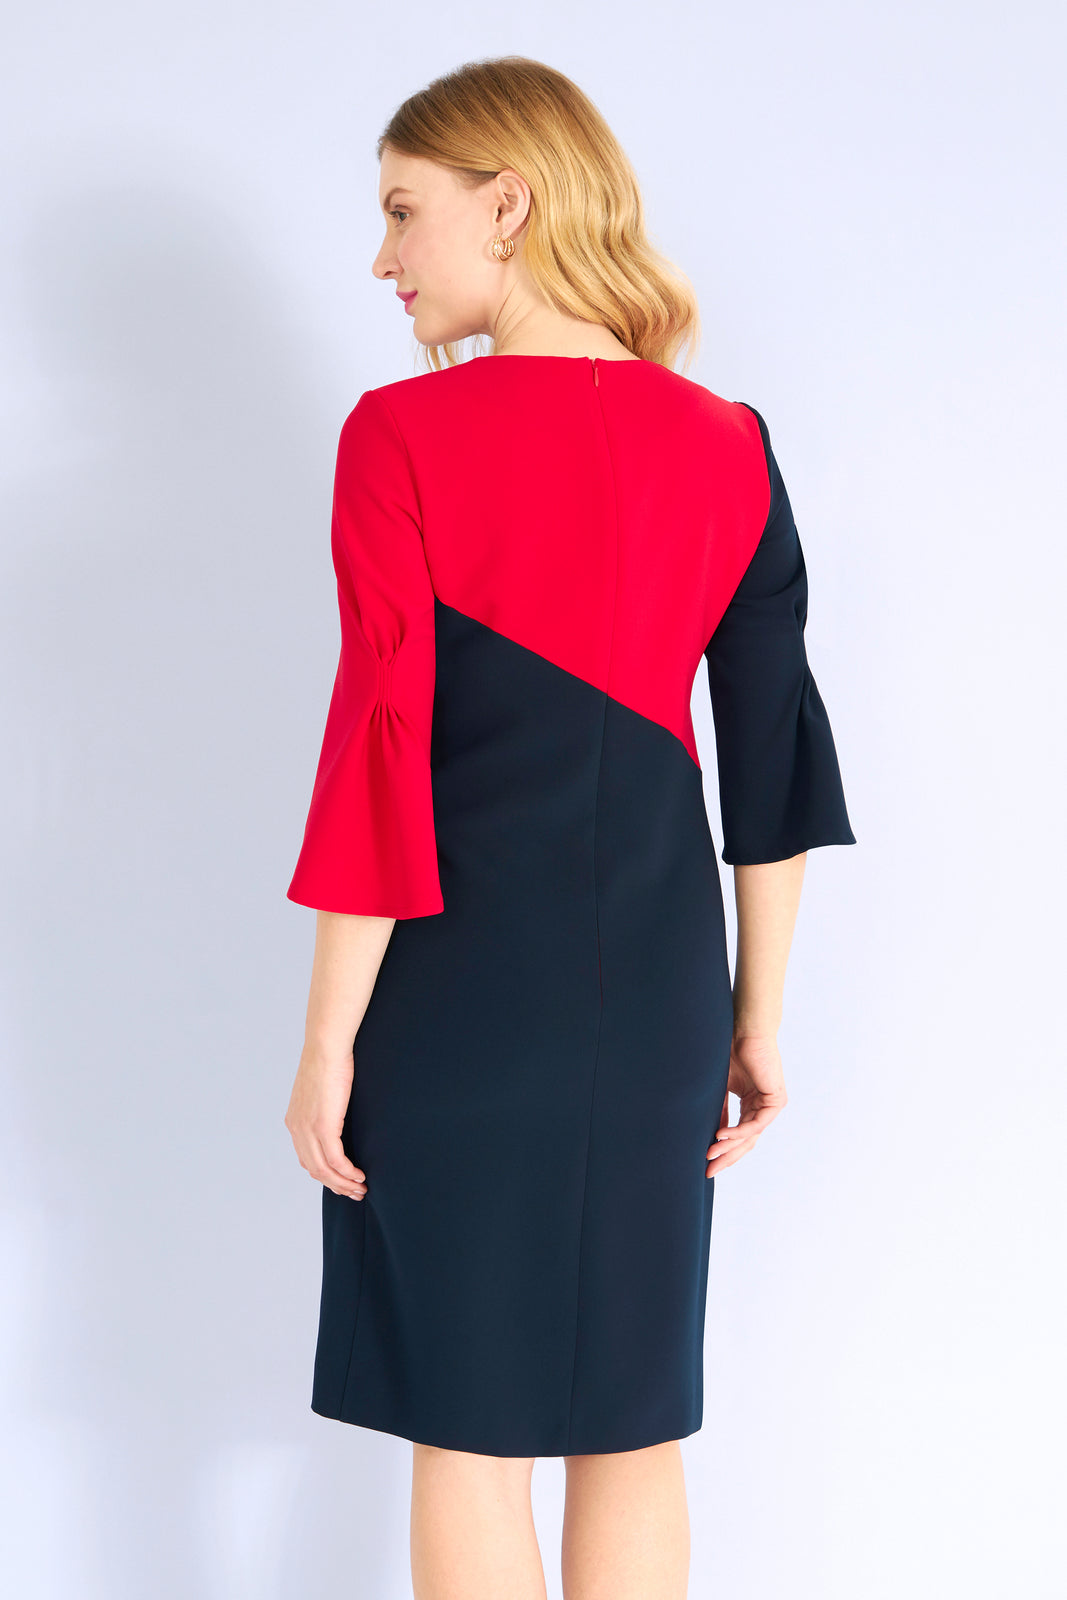 TESSA - Color Block Kleid mit Raffung am Ärmel